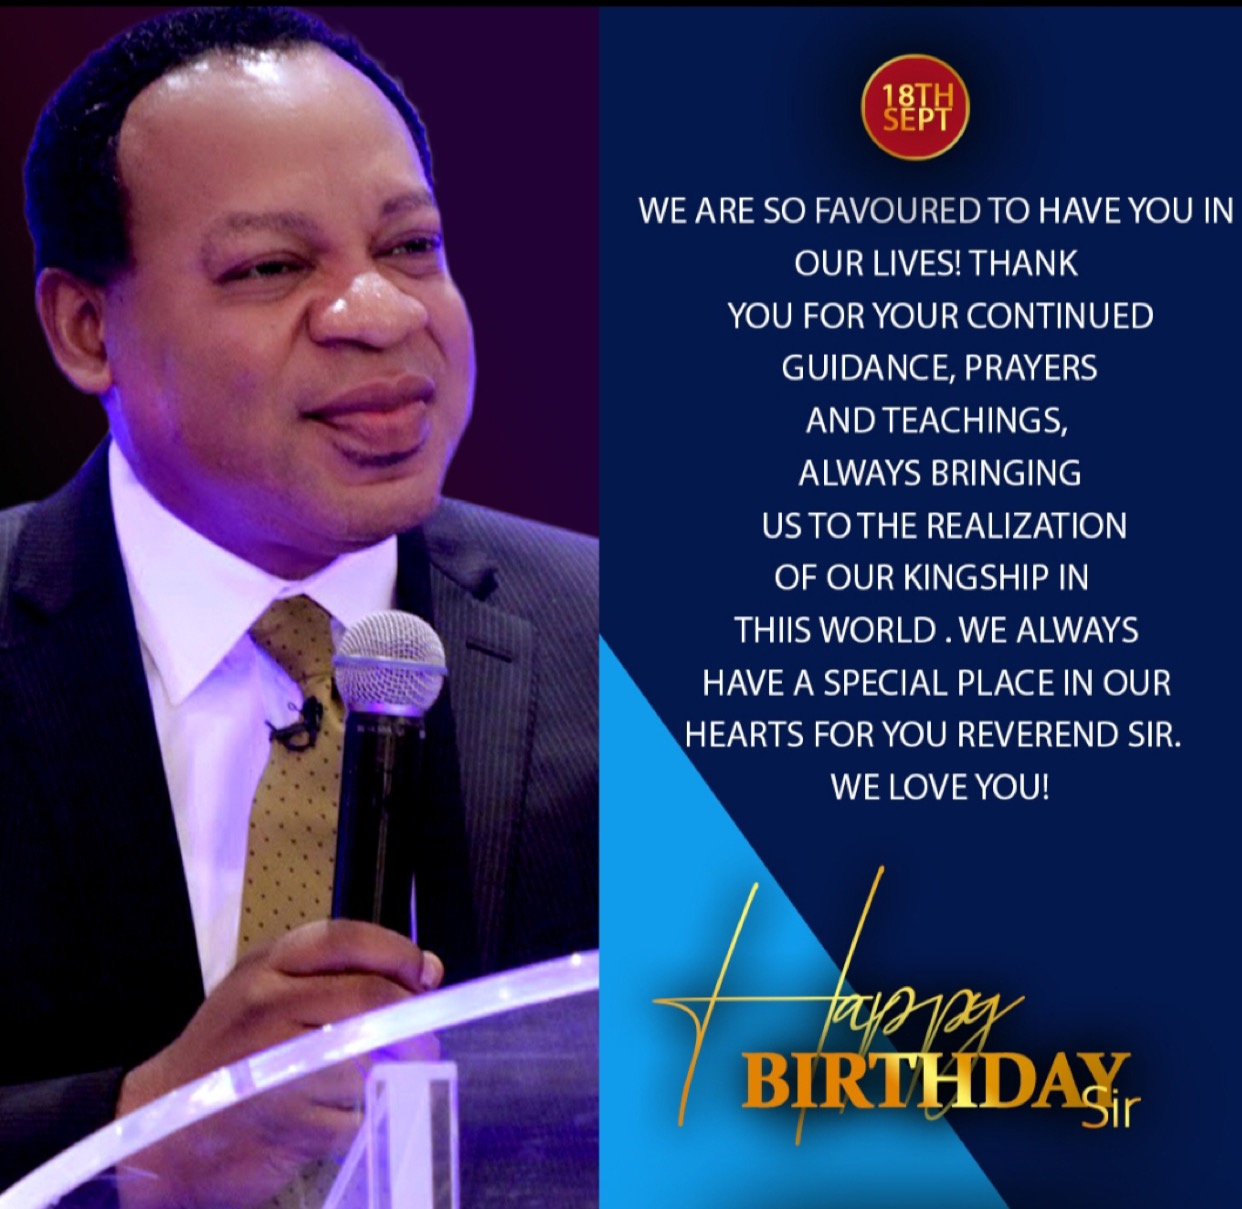 Happy Birthday Dear Rev Sir.